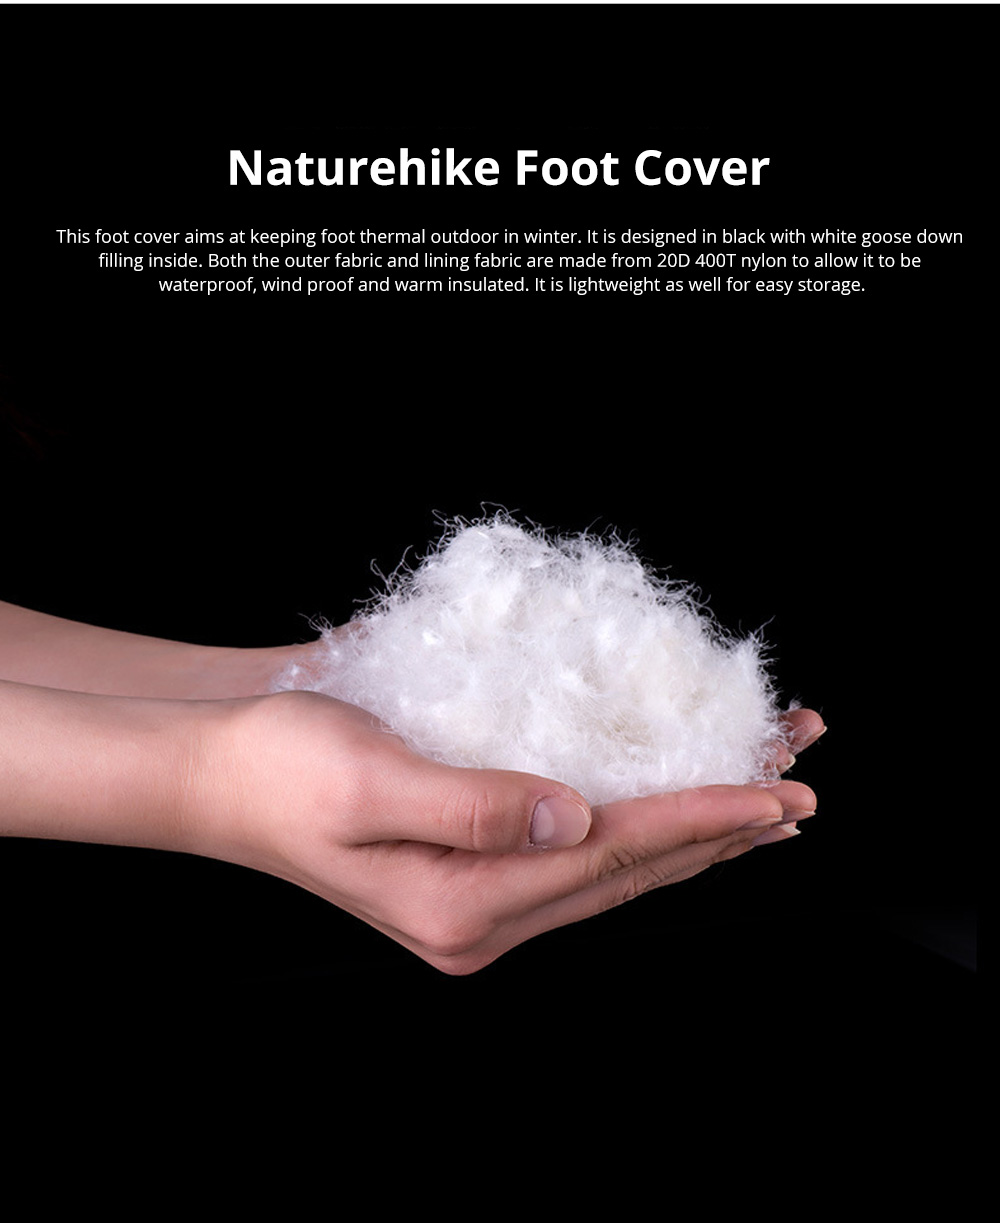 Naturehike Goose Down Foot Shoes Cover for Outdoor Use Wind Proof and Waterproof Foot Cover Thermal Lightweight 1